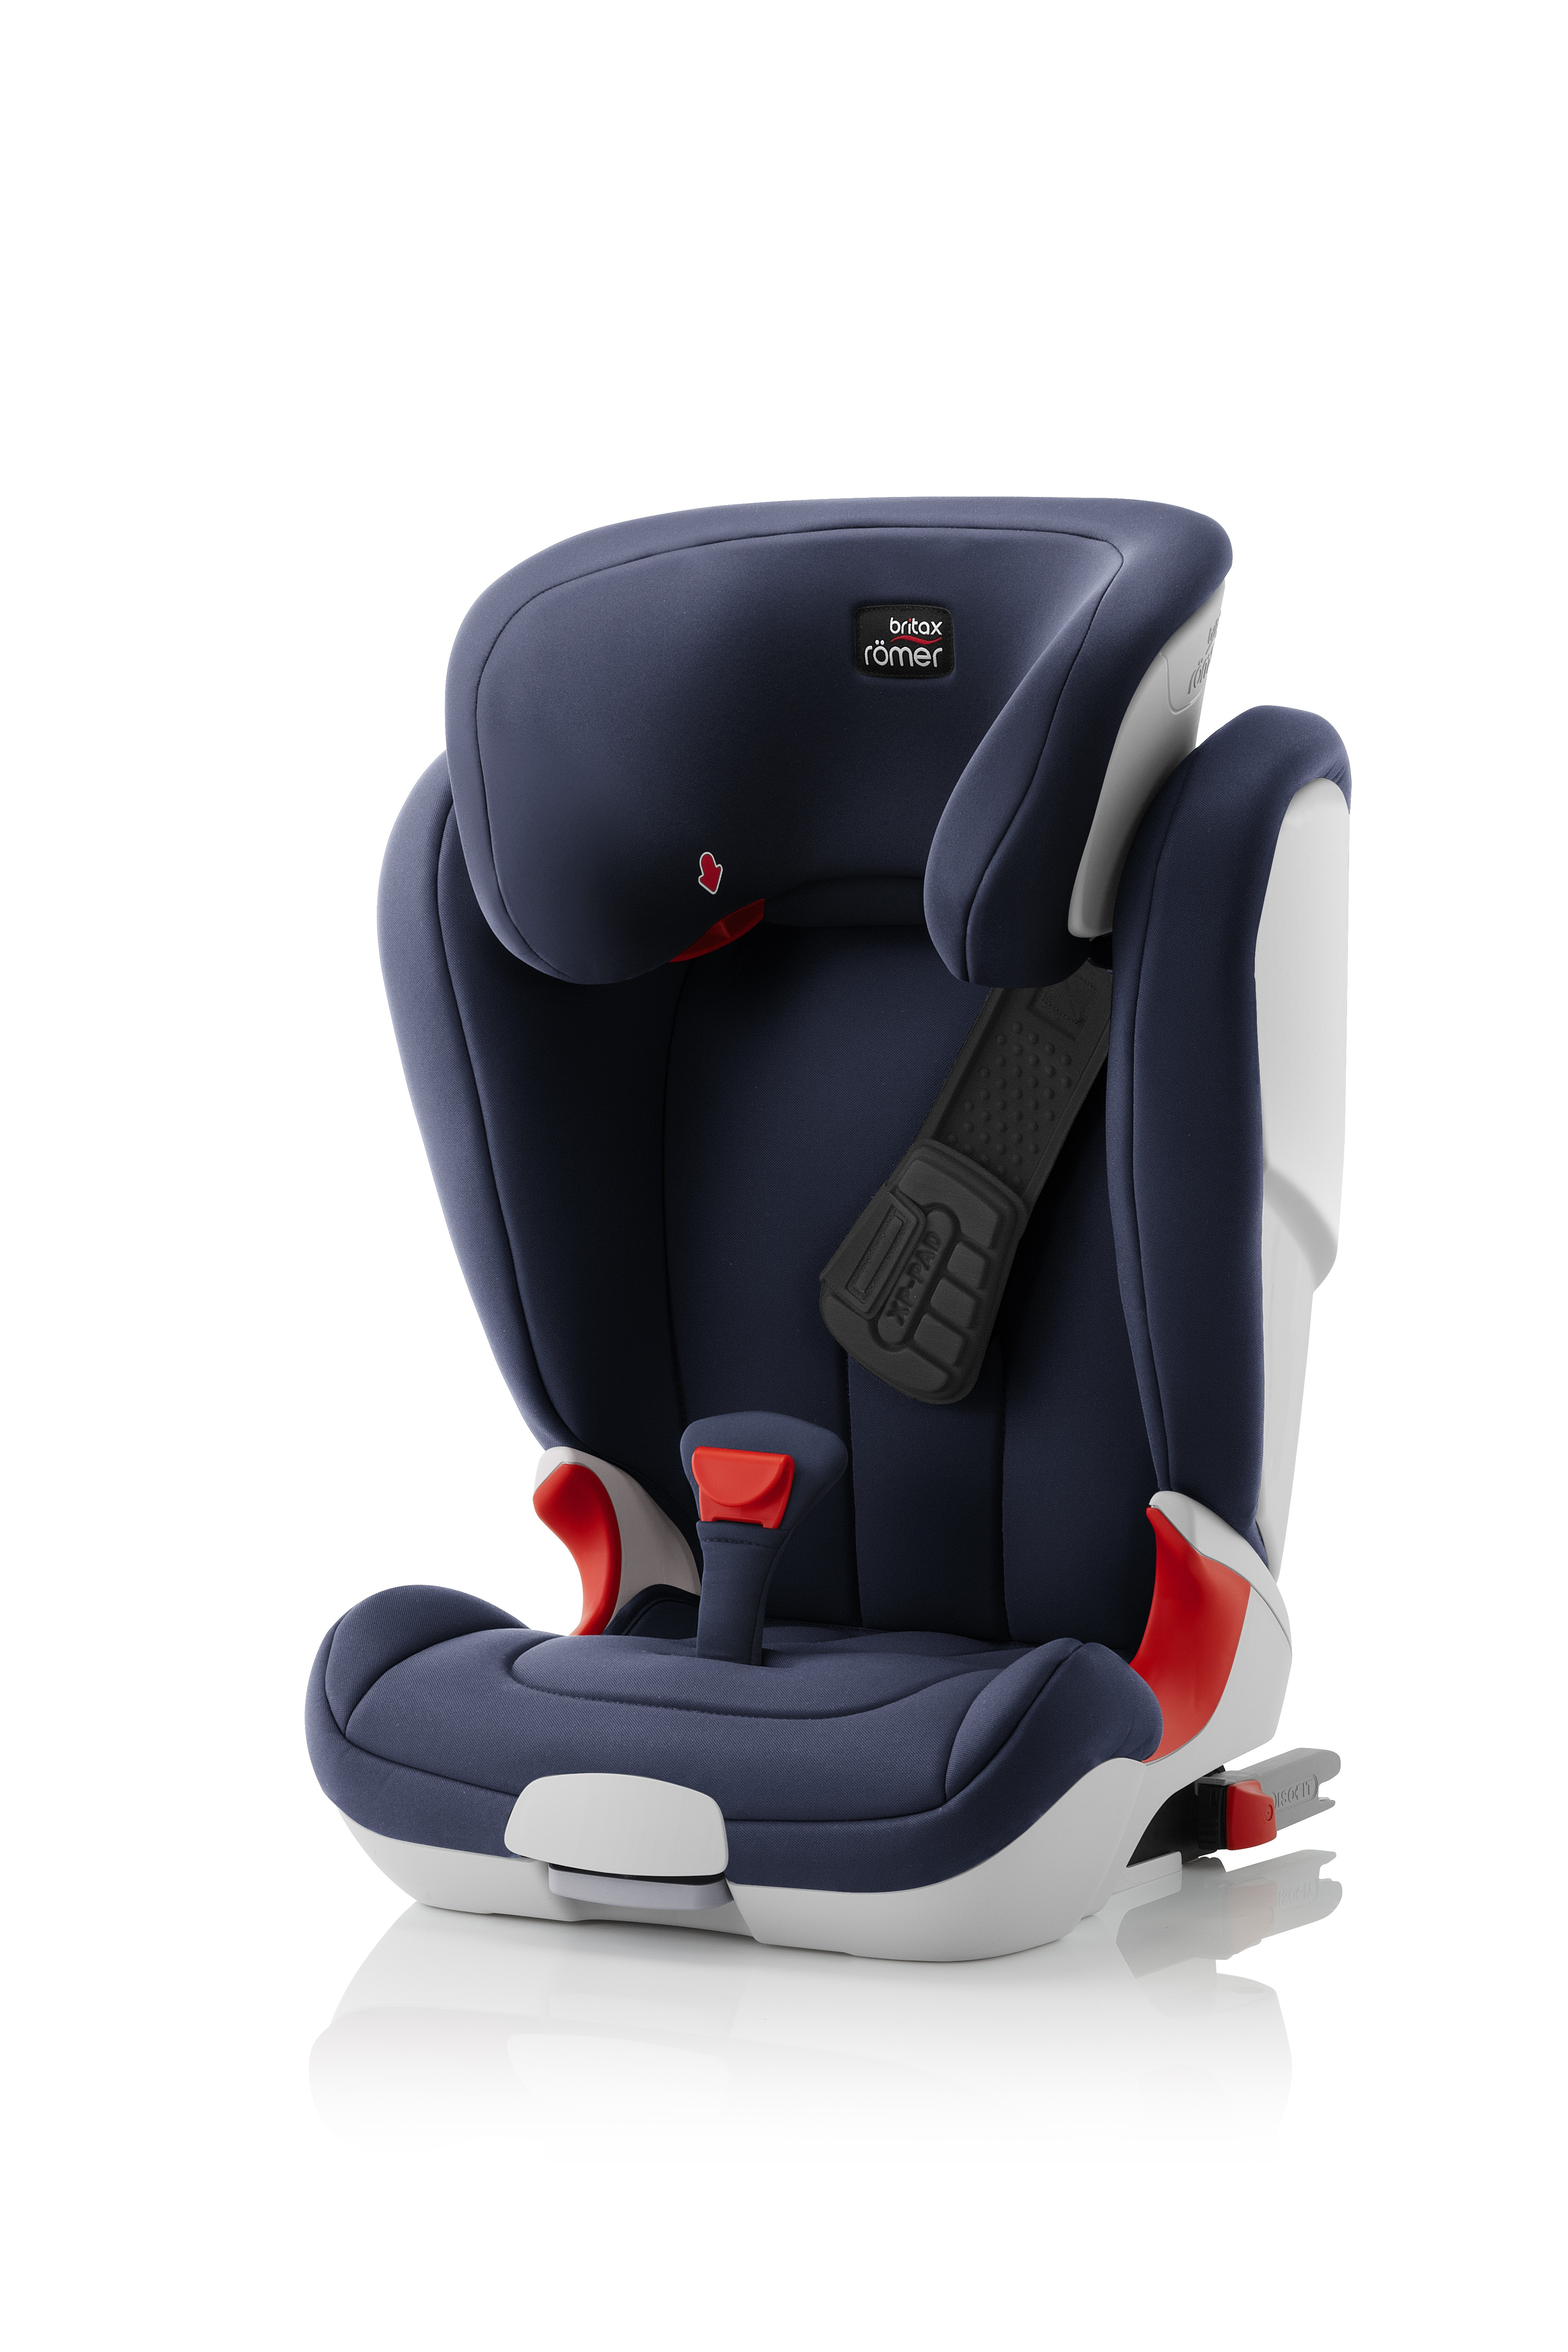 Автокресло Britax Roemer Kidfix II XP Moonlight Blue Trendline, цвет: синийBritax R?mer <br>Автокресло Britax Roemer Kidfix II XP Moonlight Blue Trendline, цвет: синий